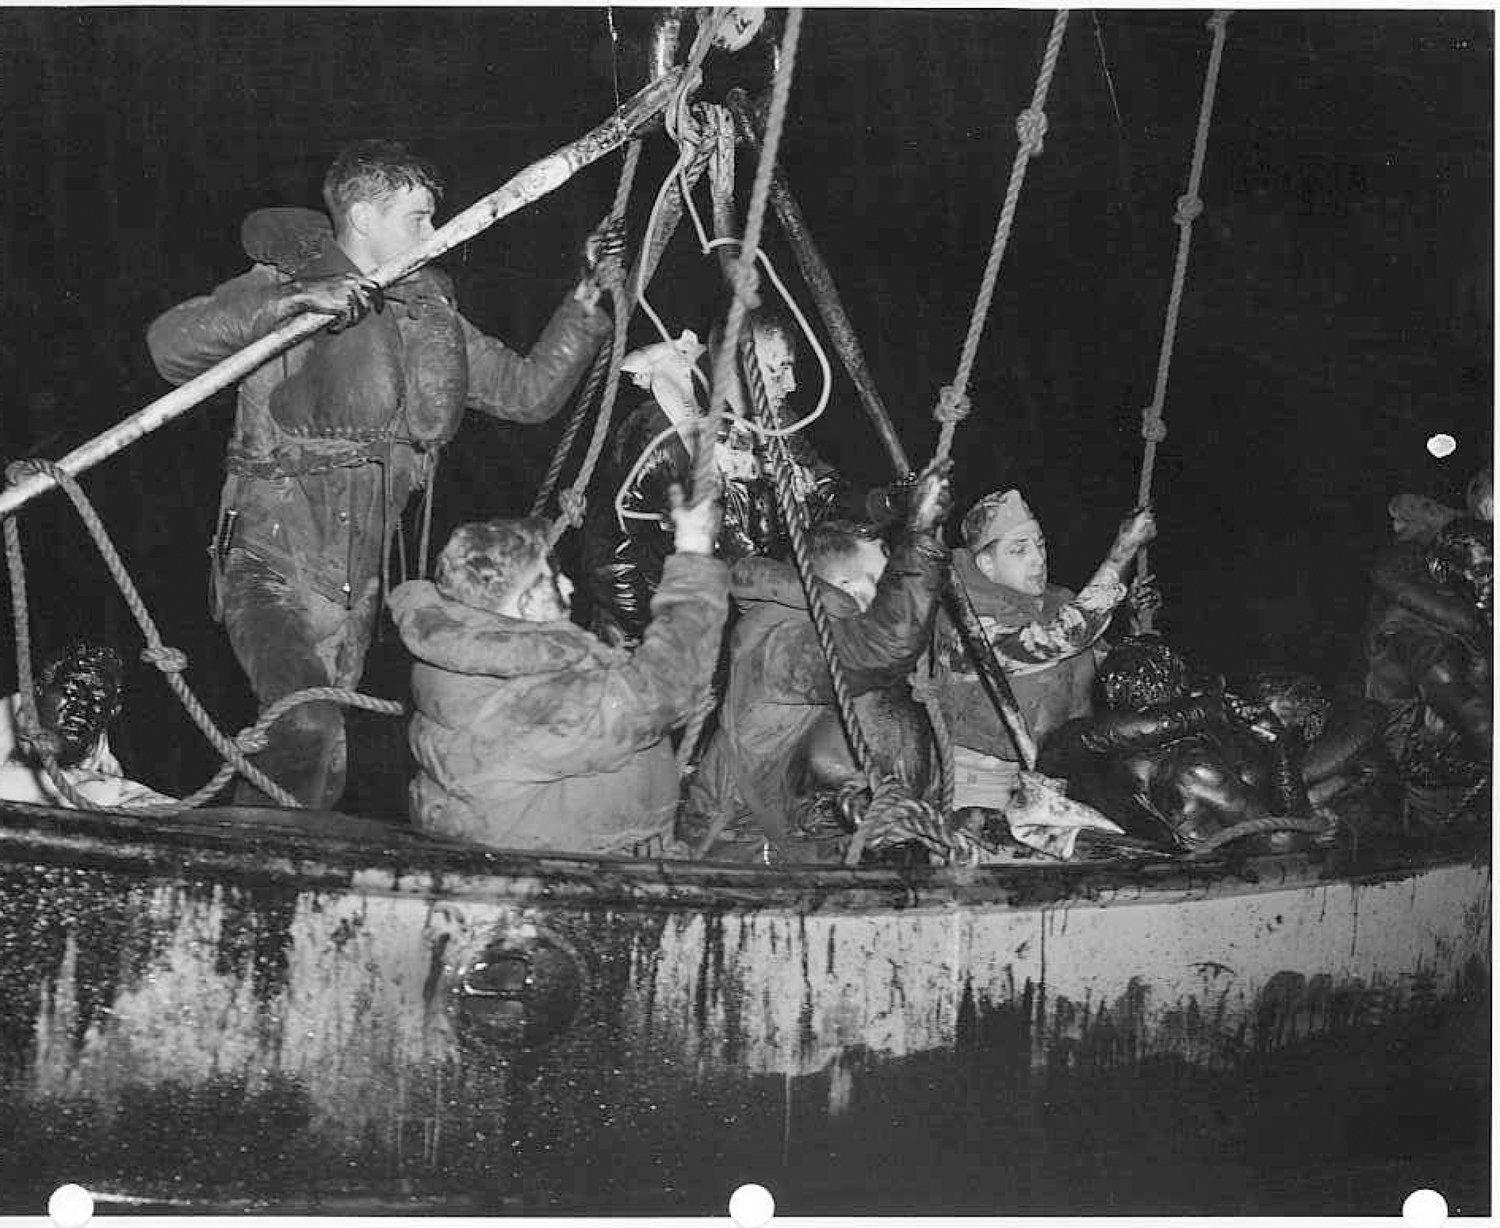 Survivors being pulled from the oil-slicked sea the night of the collision.